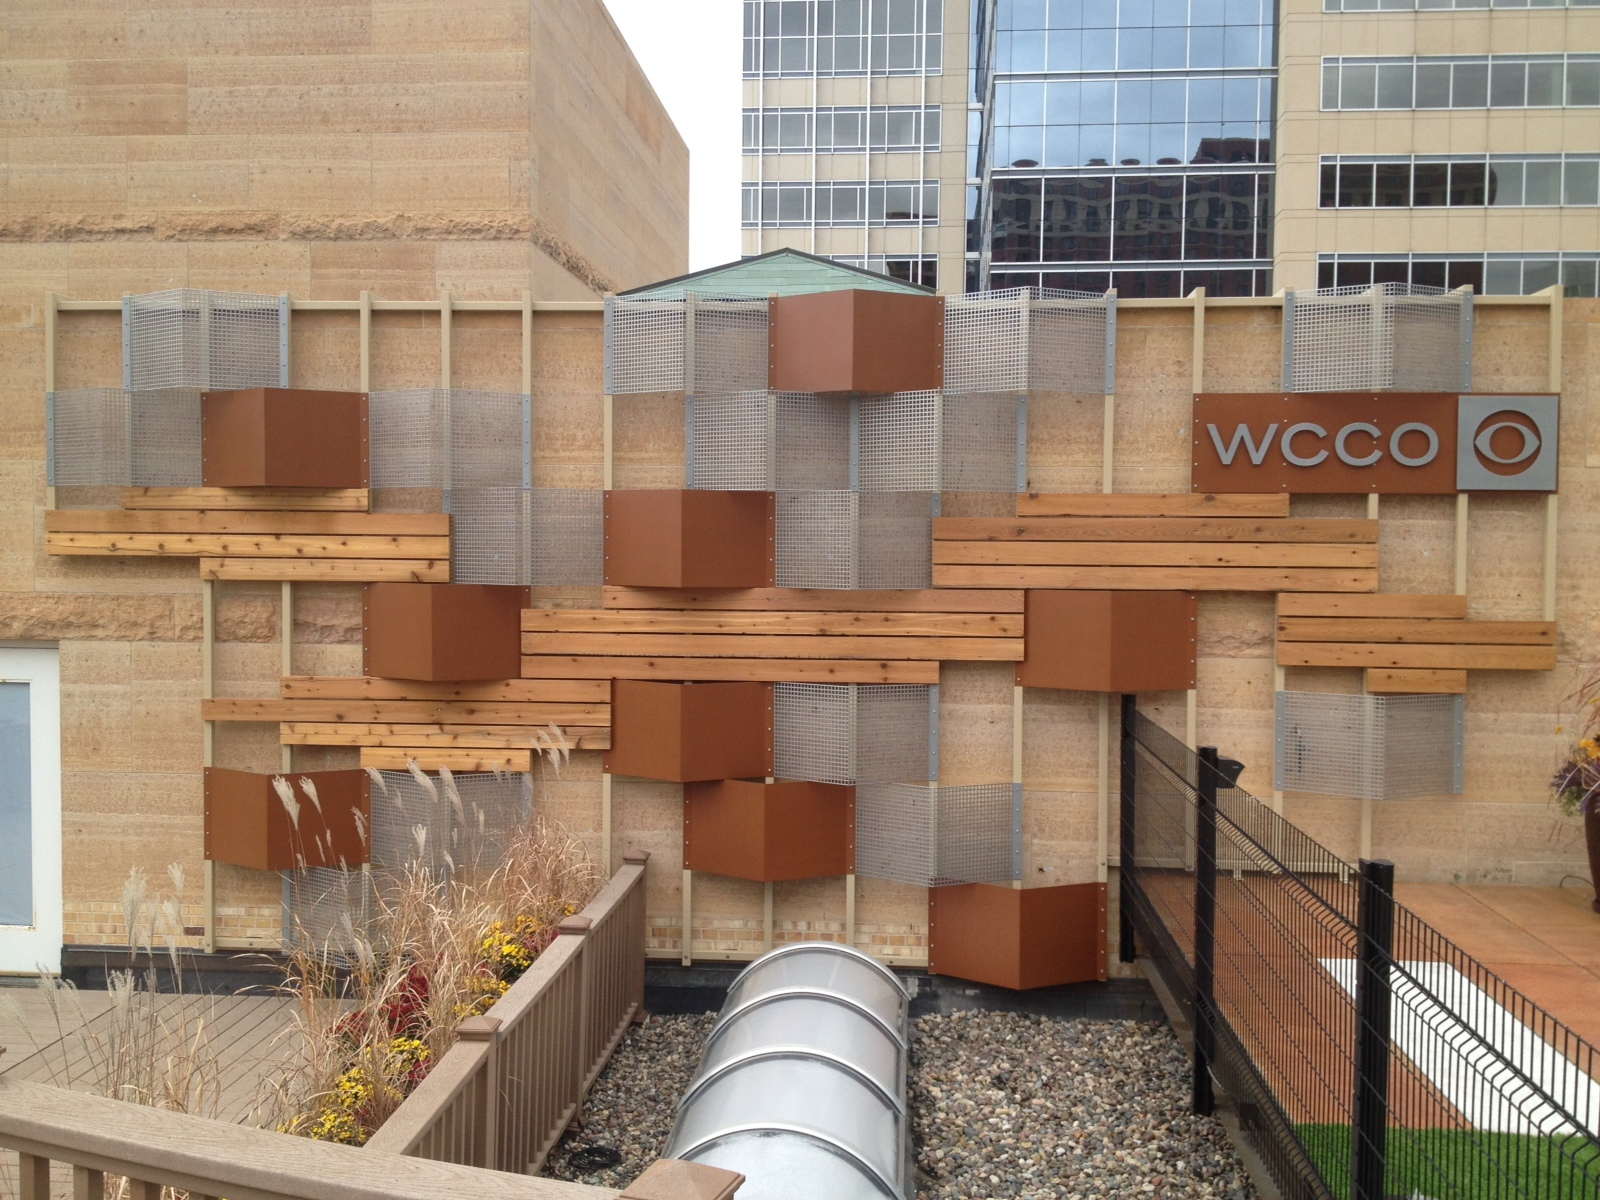 Custom wall sculpture for roof top deck of WCCO downtown Minneapolis.